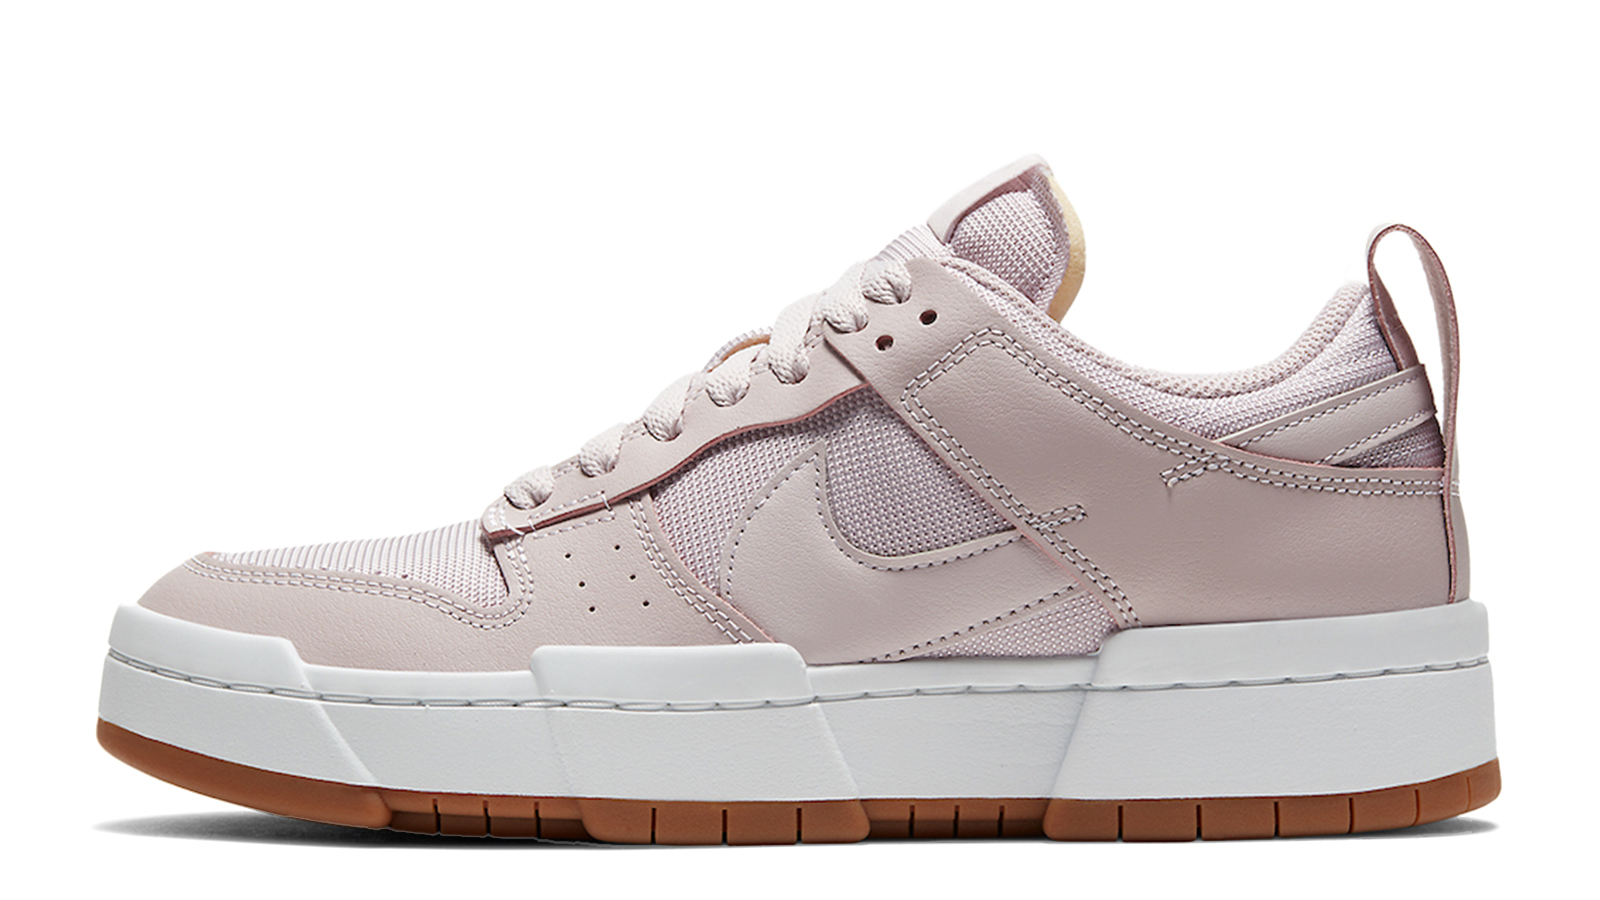 Nike Dunk Low Disrupt Dusty Pink CK6654-003